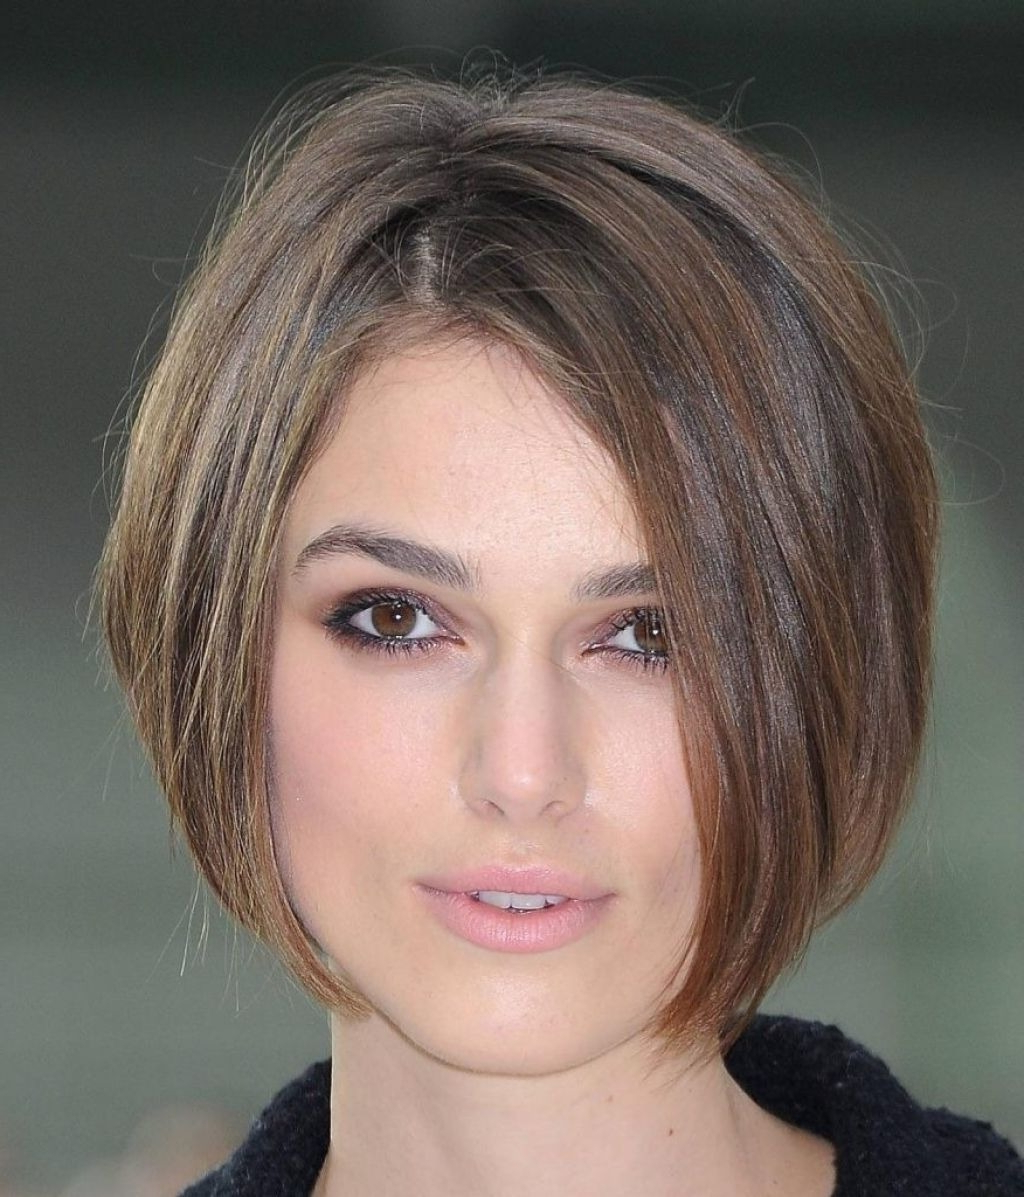 Trendy Short Hairstyles Round Face Fine Hair For Everyone | Hairstyles With Regard To Short Trendy Hairstyles For Fine Hair (View 13 of 25)